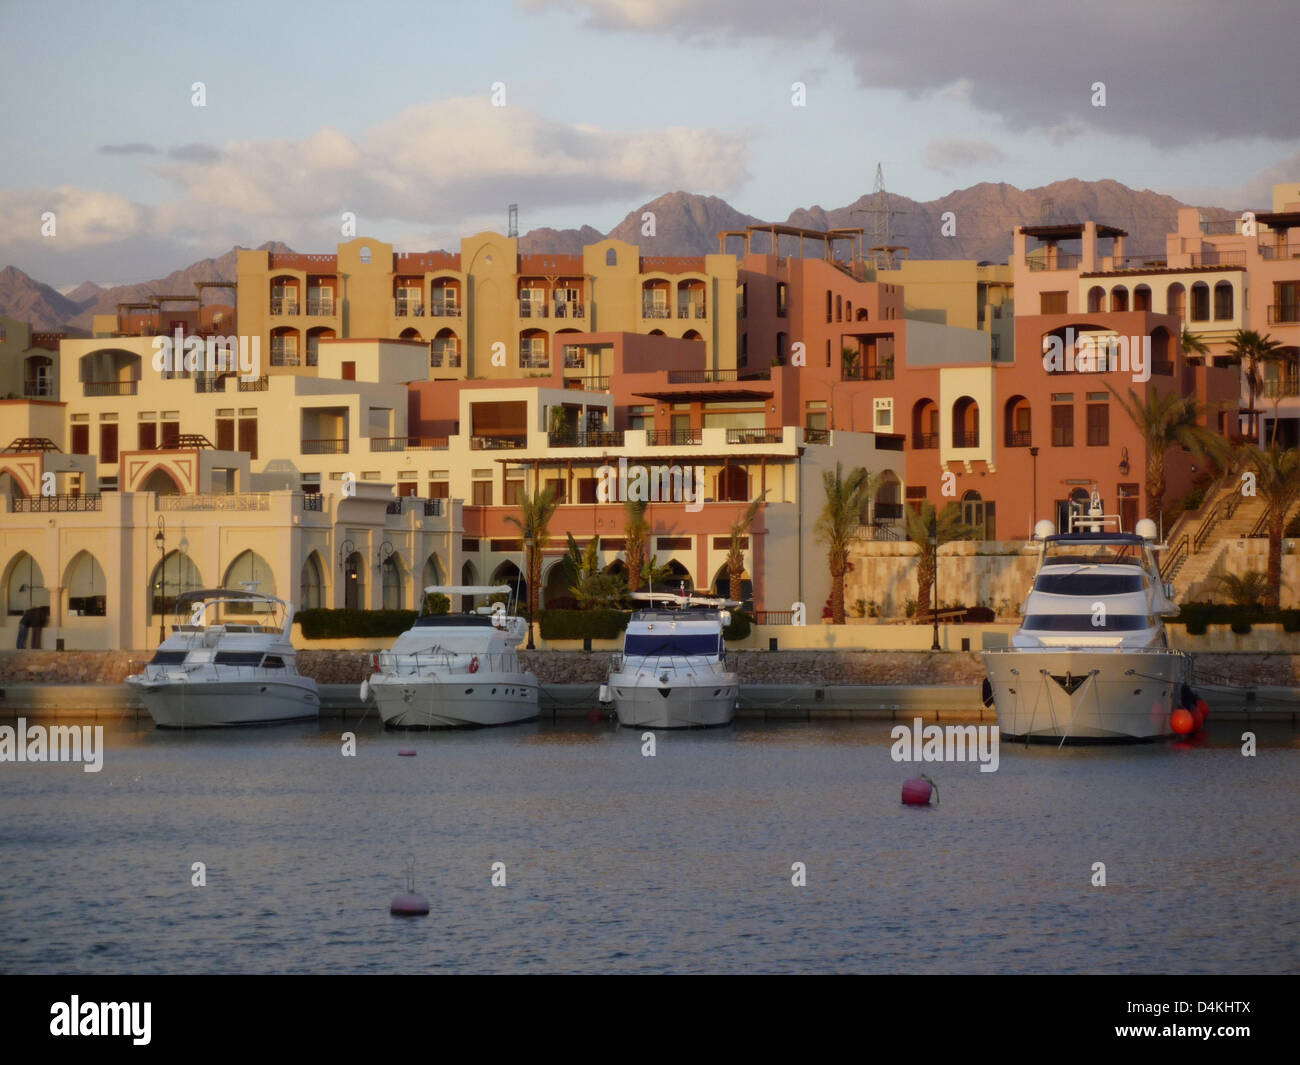 View on the waterfront Marina Plaza hotel in Aqaba, Jordan, 24 March 2009. Photo: Willy Matheisl Stock Photo